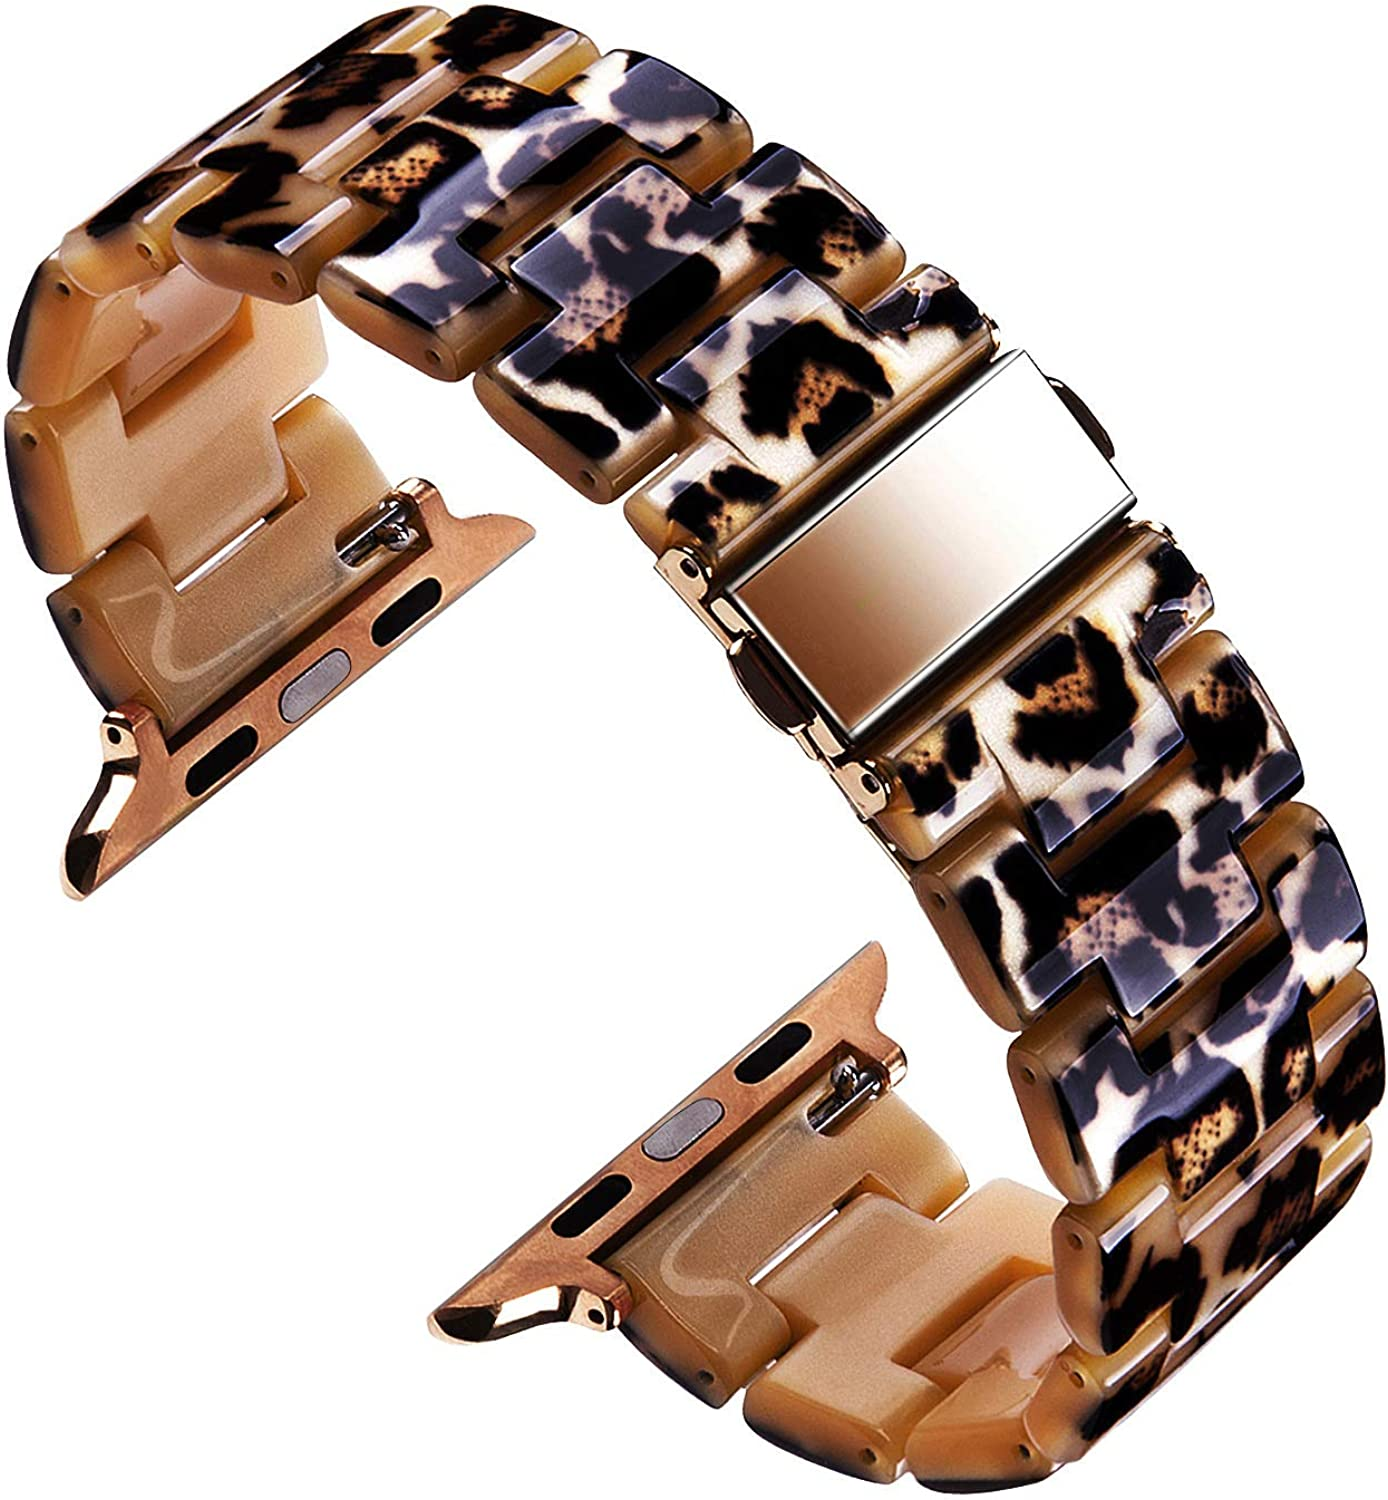 VIQIV Resin Bracelet Compatible with Apple Watch Band 38mm 40mm 42mm 44mm Iwatch Series 5/4/3/2/1, Tortoiseshell Dressy Bangle Jewelry Wristband Strap for Women Stainless Steel Adjustable